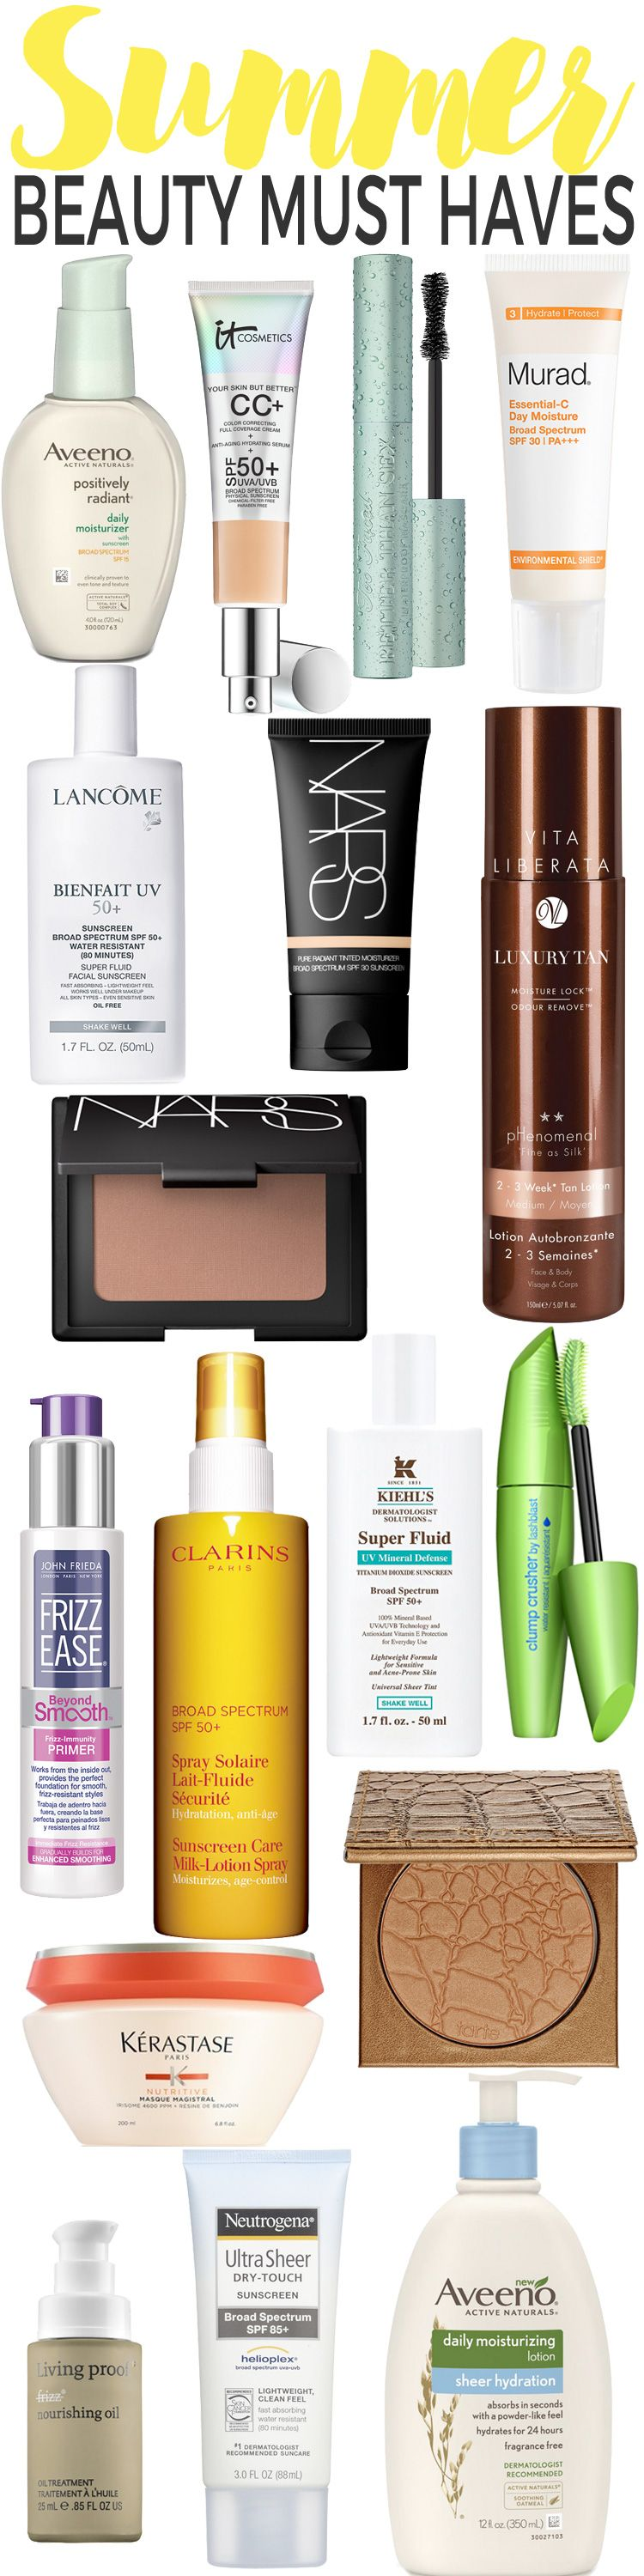 2019 year look- Beauty summer products 3